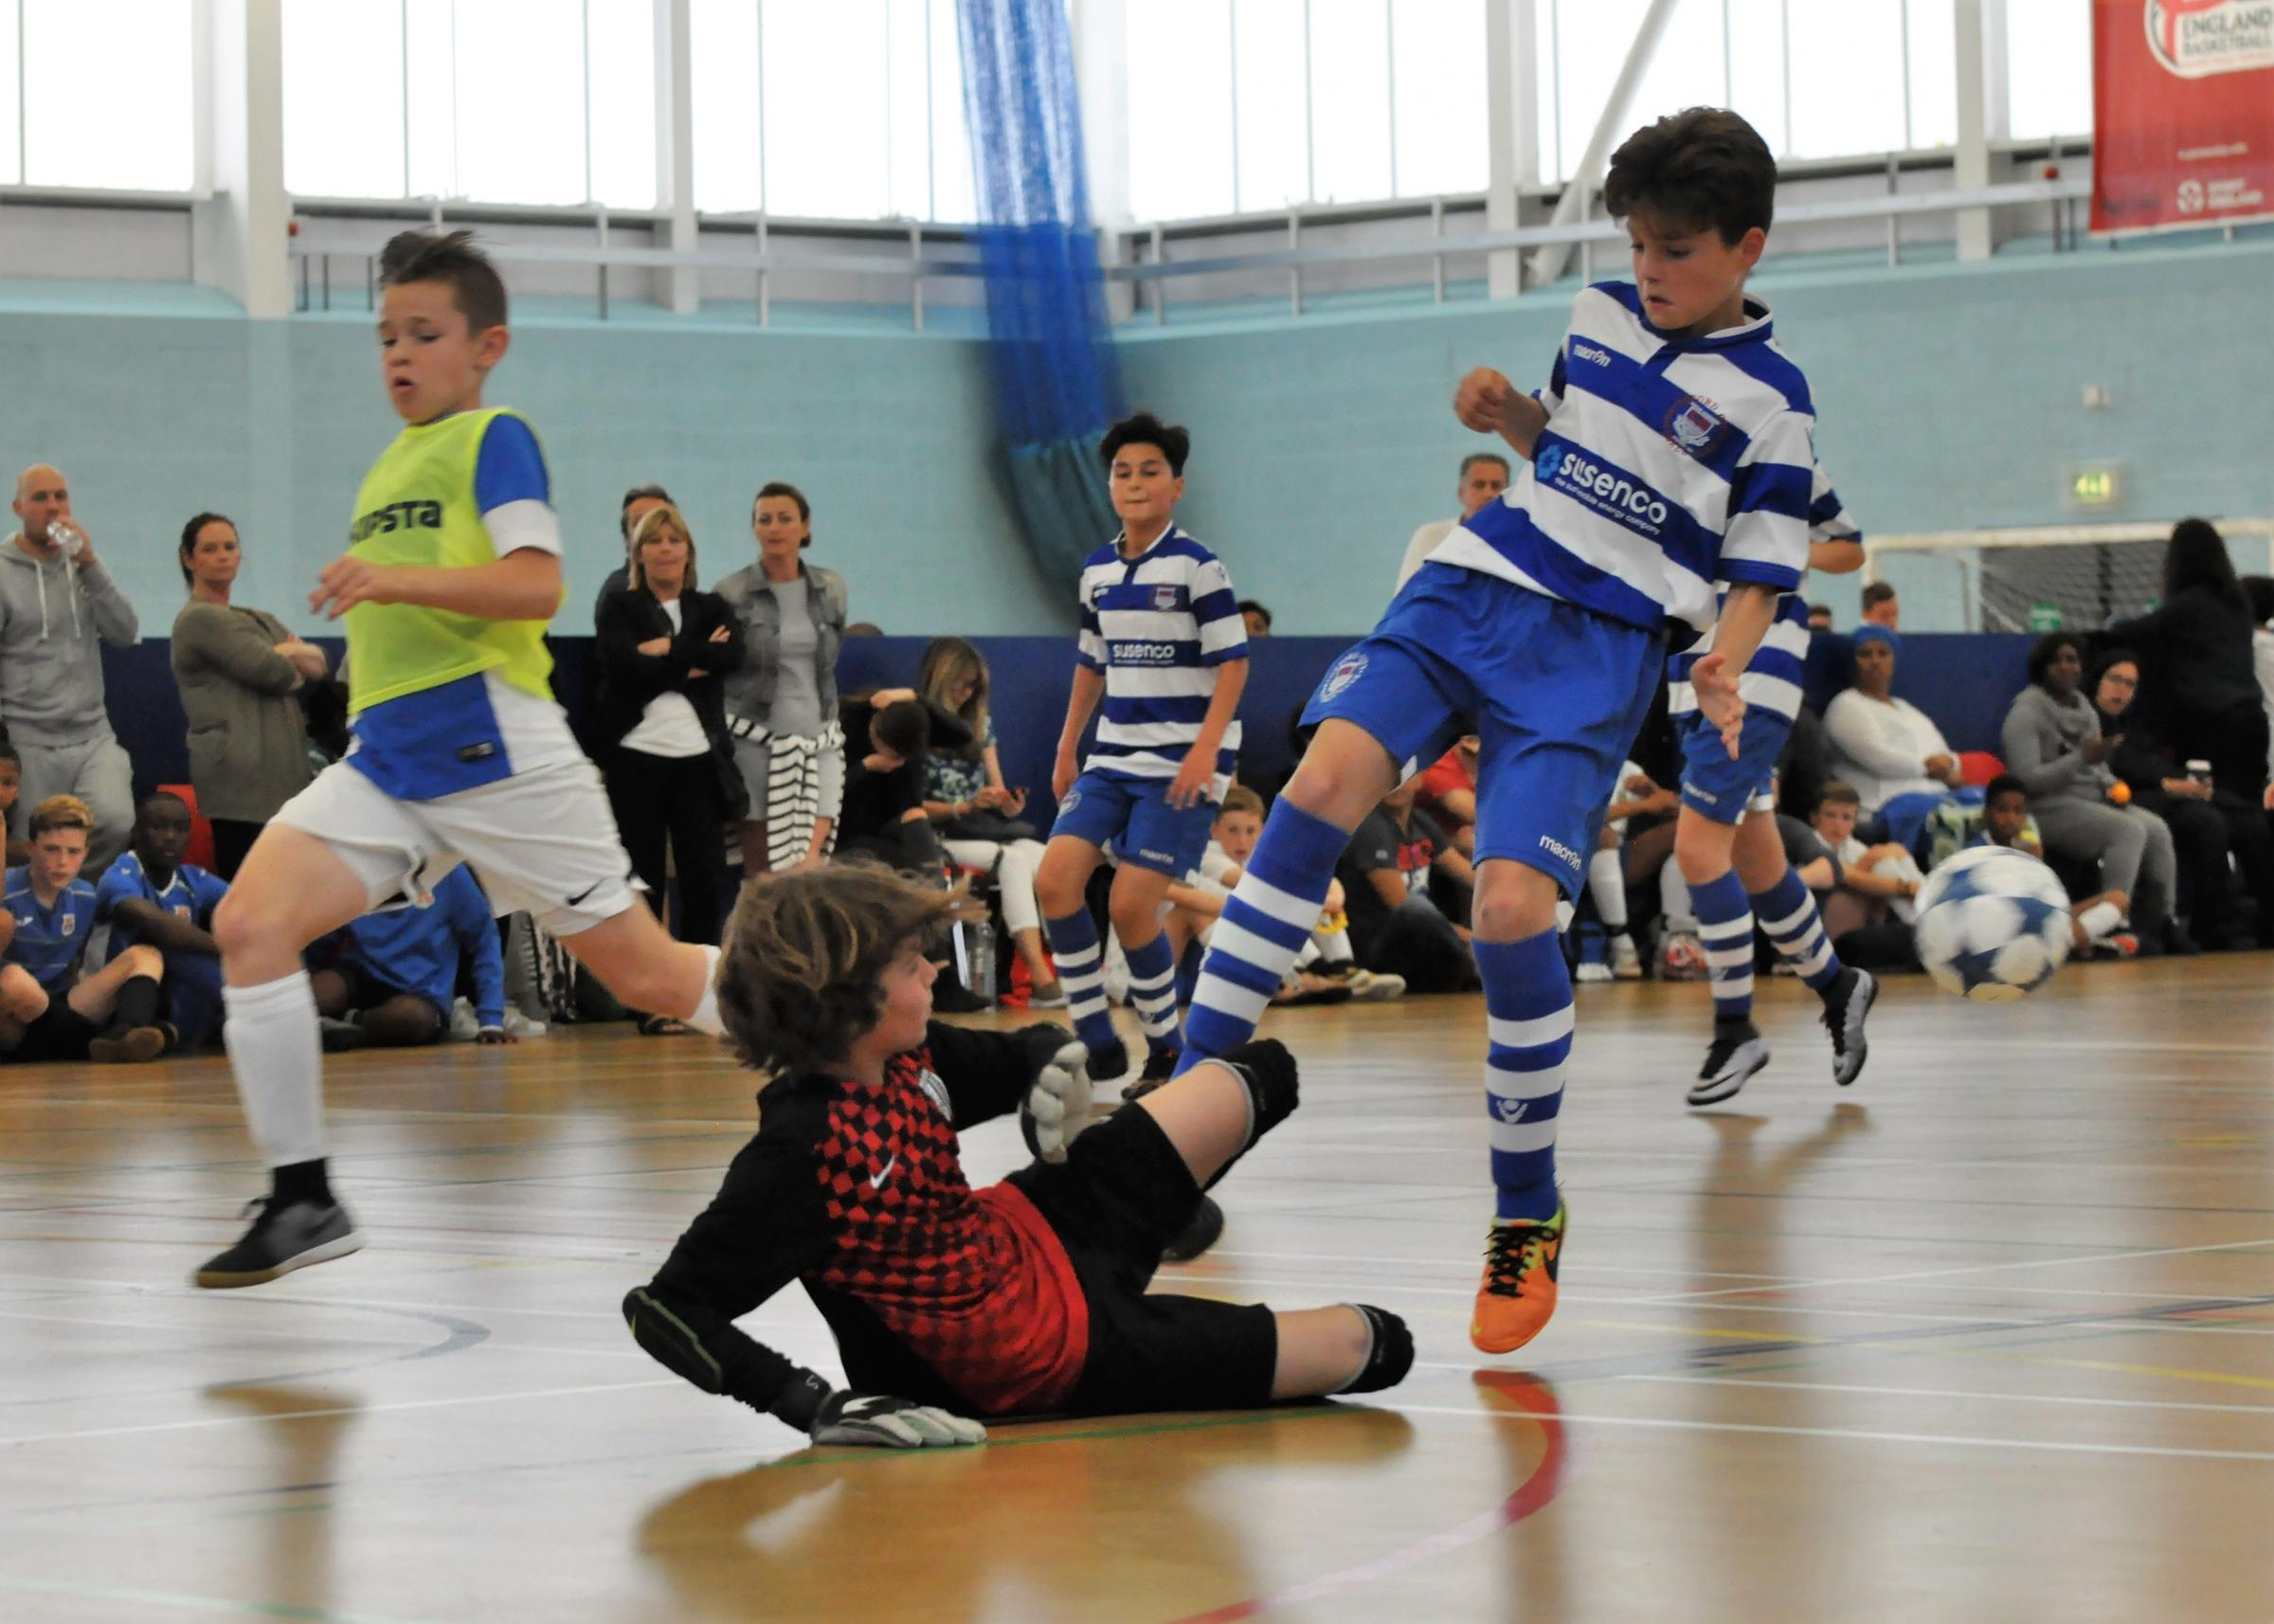 TALENT: Oxford City Lions' Freddie Kennedy has a shot saved against Ole. The club have won domestic and international trophies, but play at Faringdon Leisure Centre – a venue which is not specifically designed for futsal